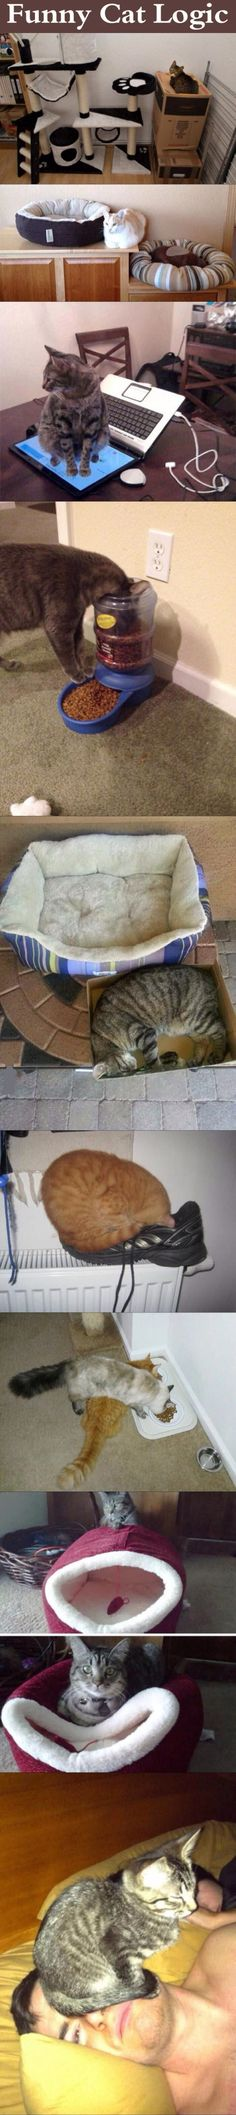 Funny Cat Logic cute animals cat cats adorable animal kittens pets kitten funny pictures funny animals funny cats